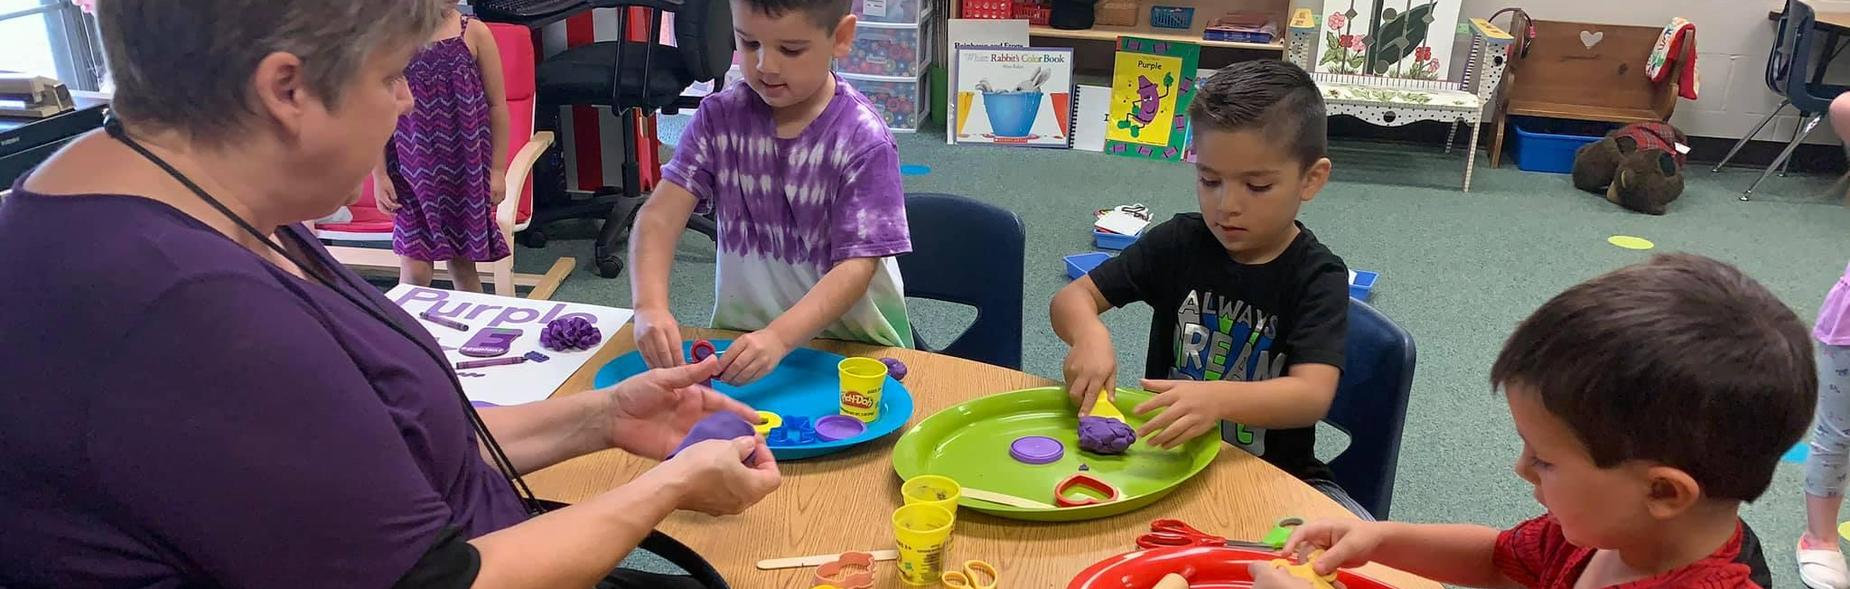 teacher and students using playdoh